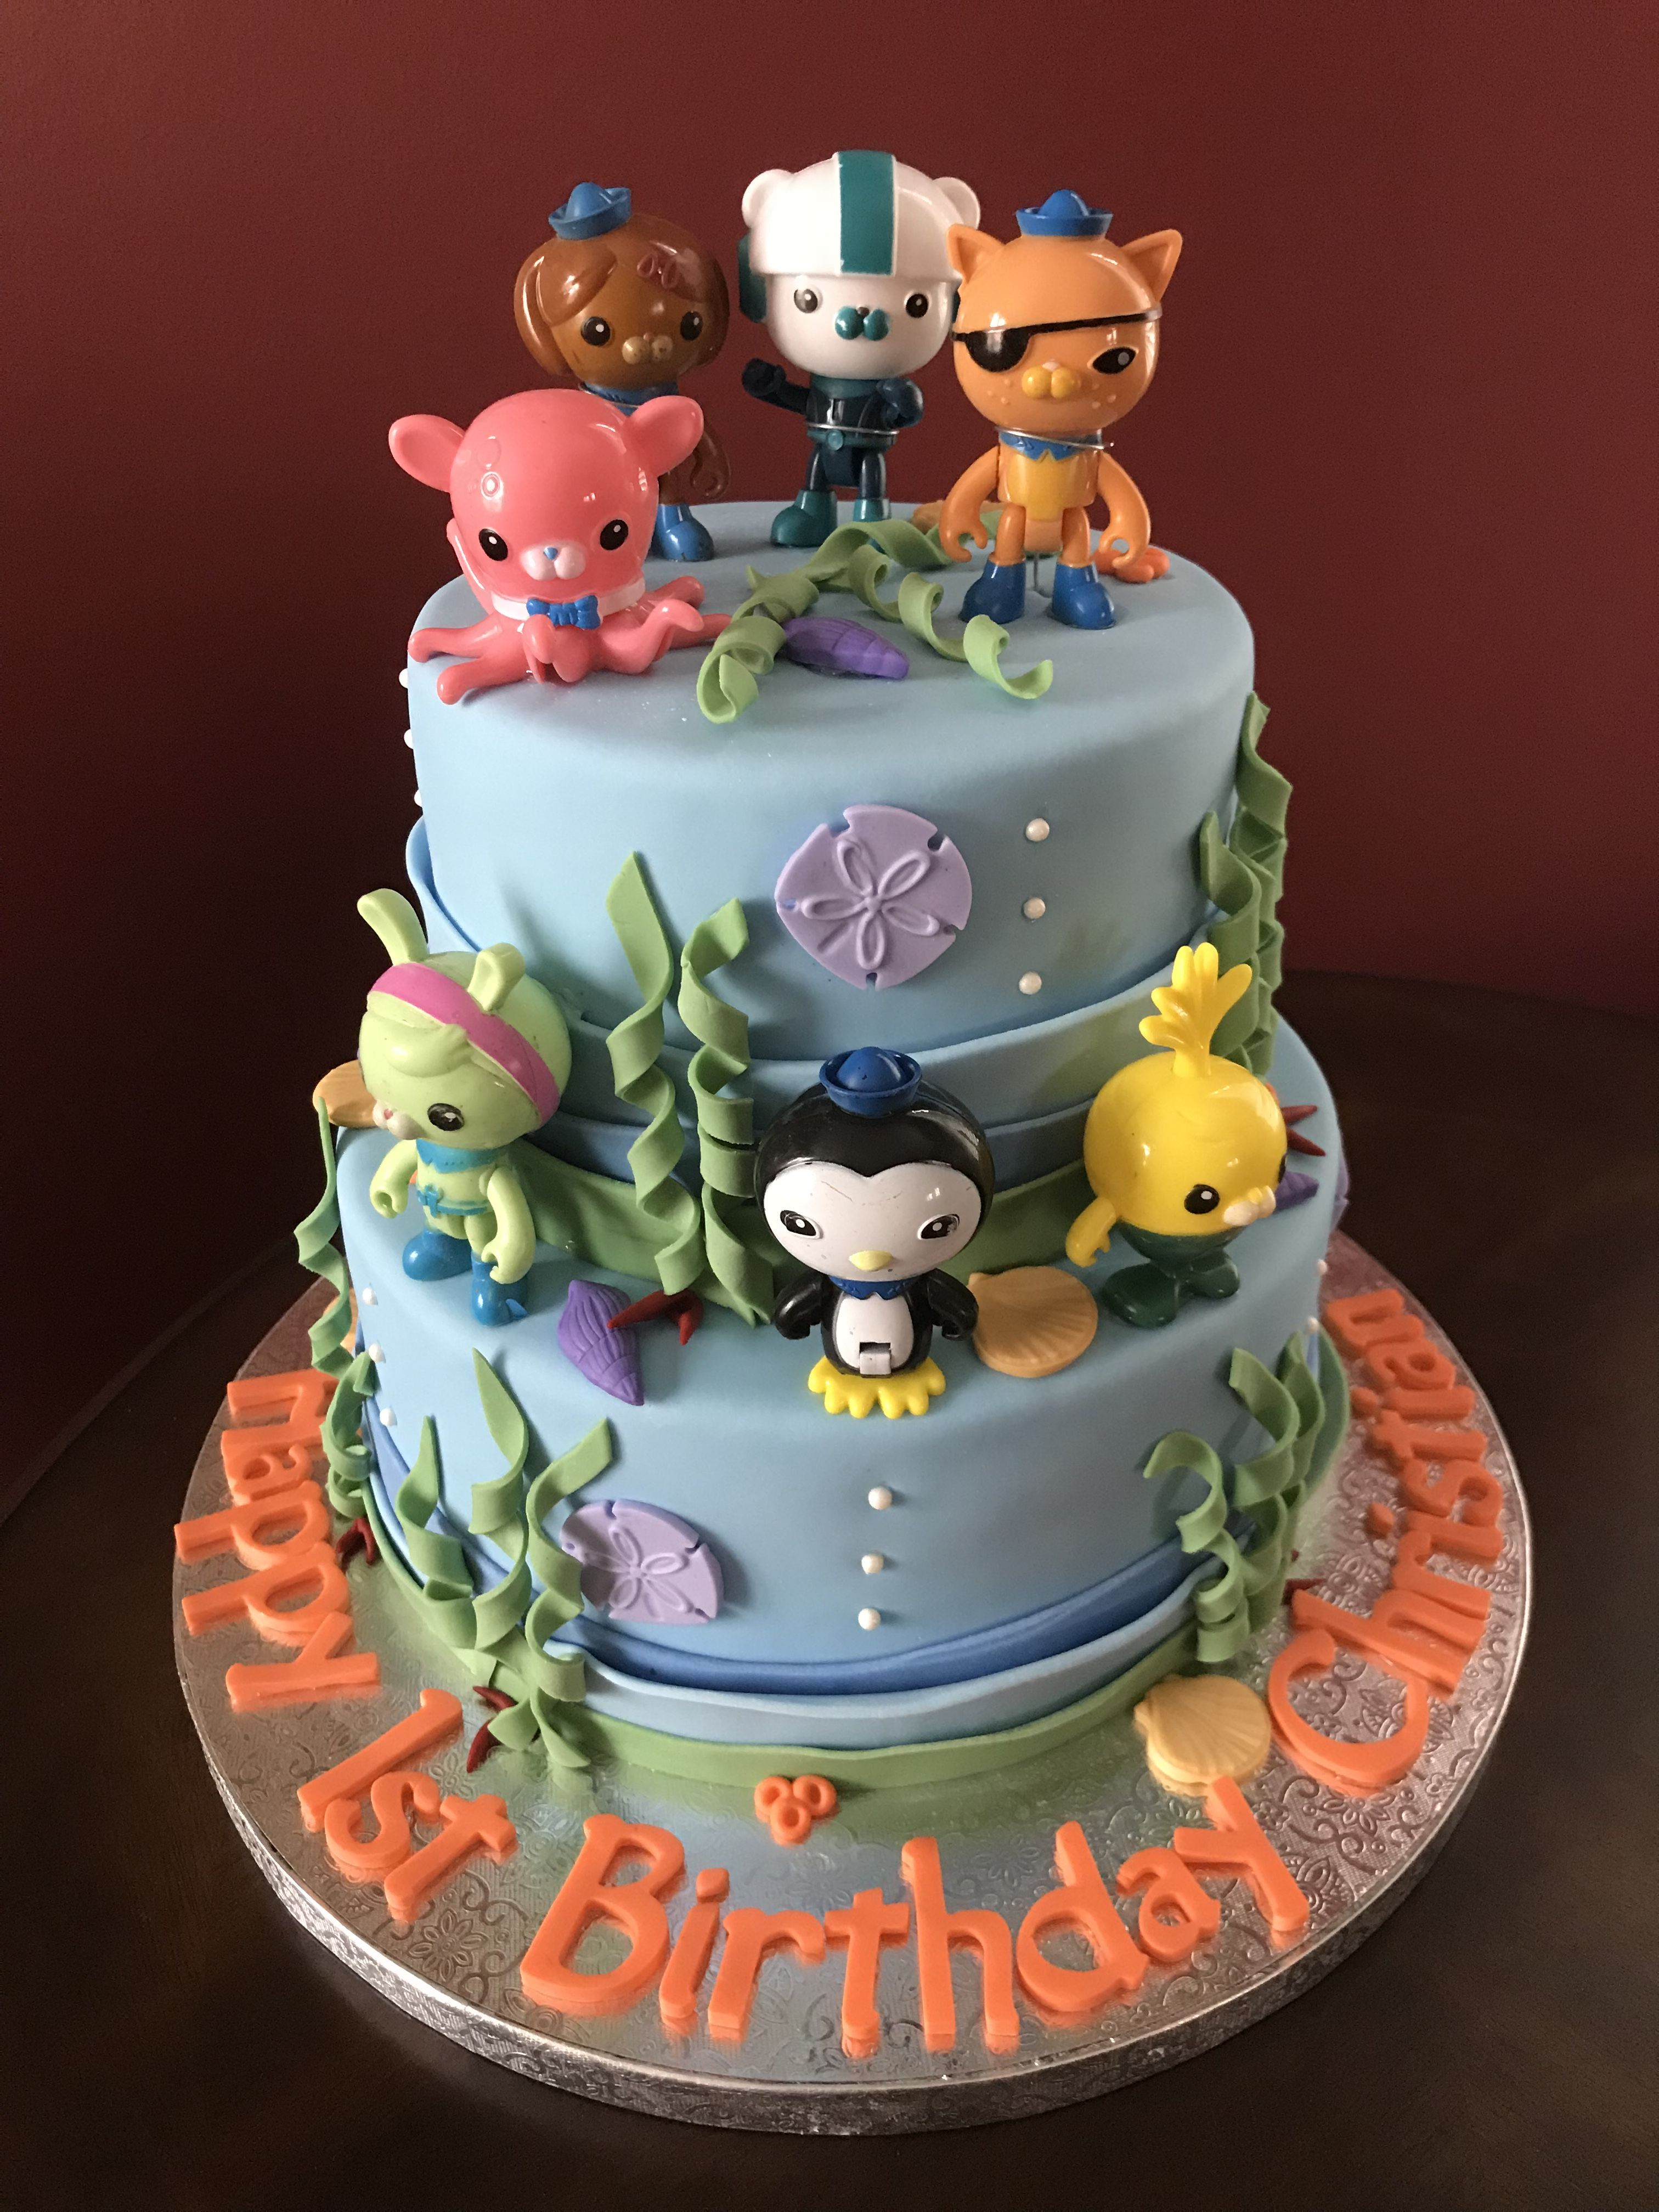 Octonauts Birthday Cake Birthday Cakes Pinterest Birthday cakes